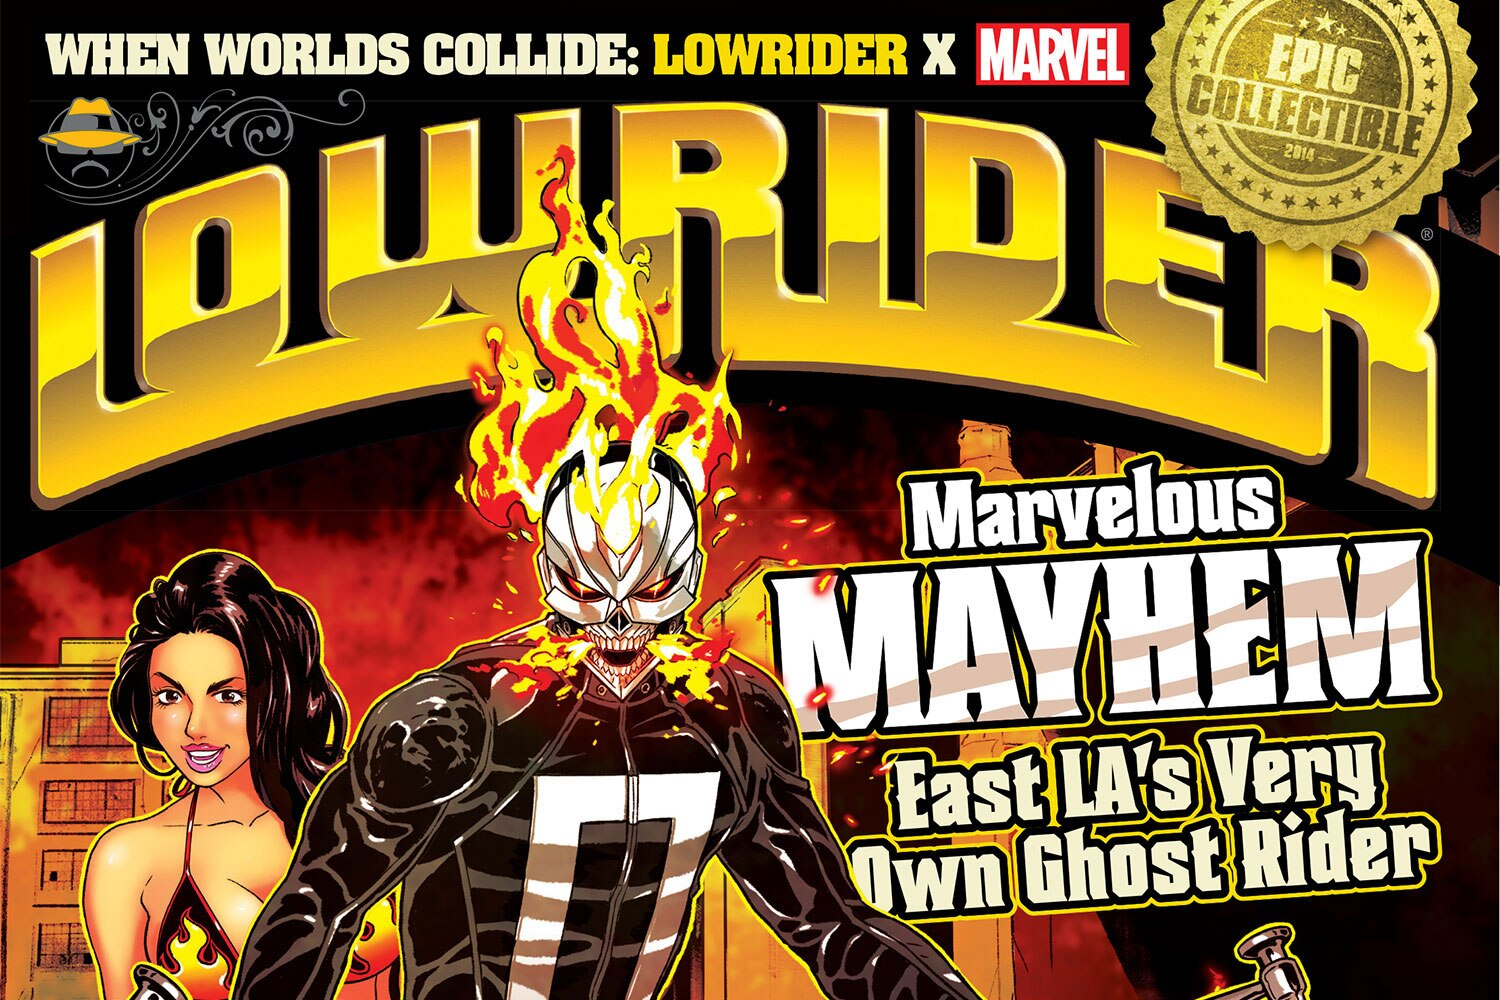 hp-lowrider-x-marvel-issue-on-sale-now-cover-01